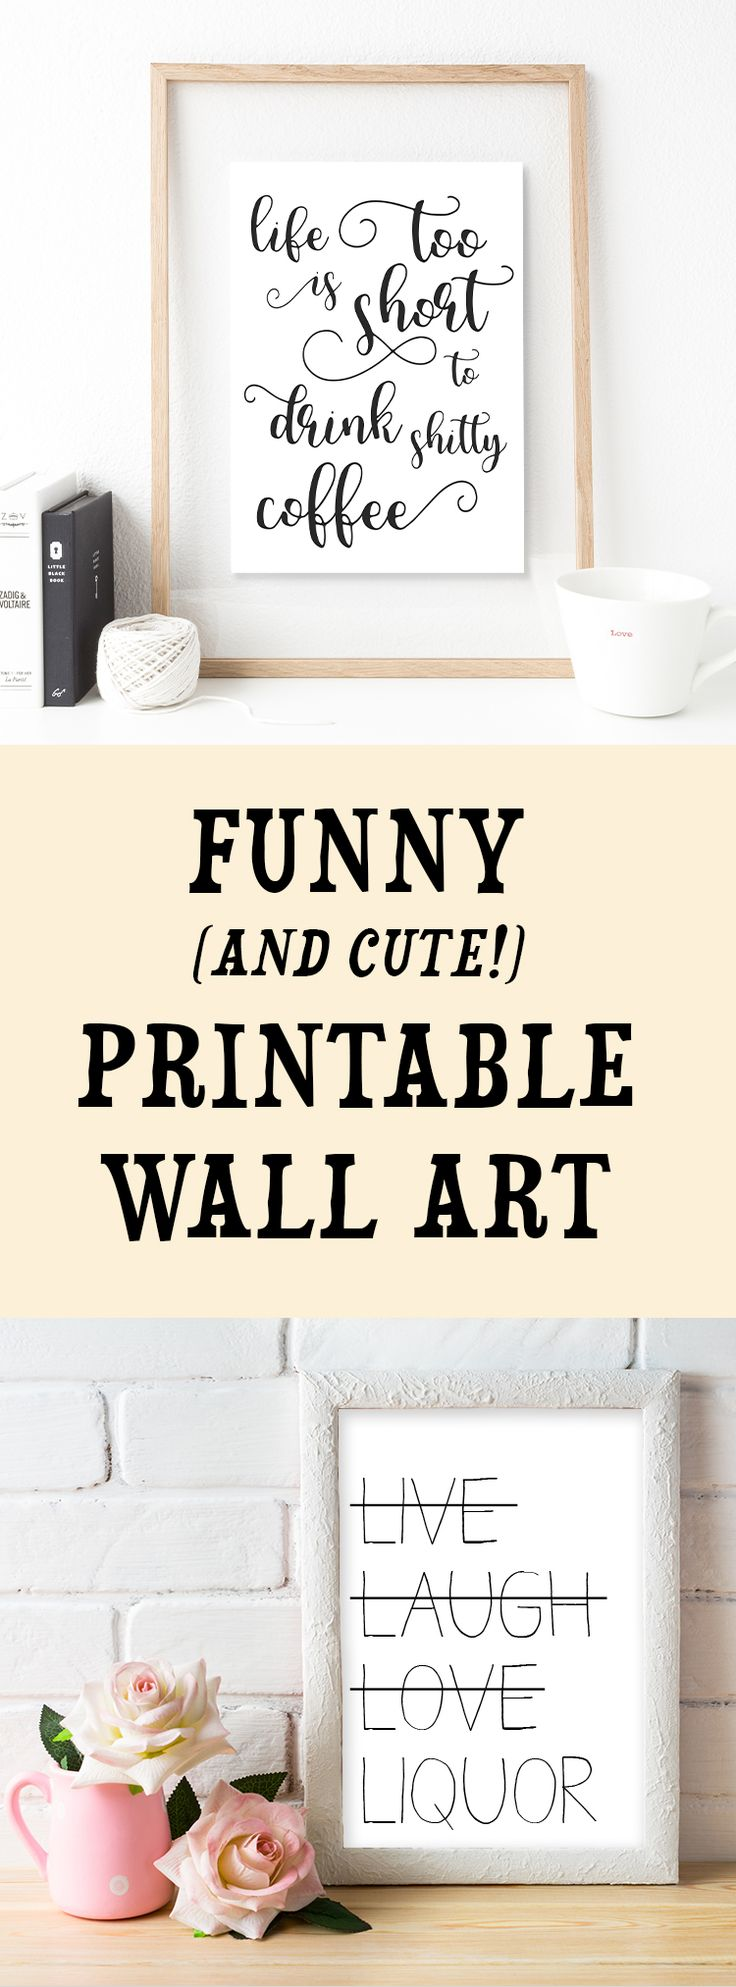 Best 25+ College Dorm Art Ideas On Pinterest | Diy Room Decor For College,  College Crafts And College Dorm Decorations Part 32